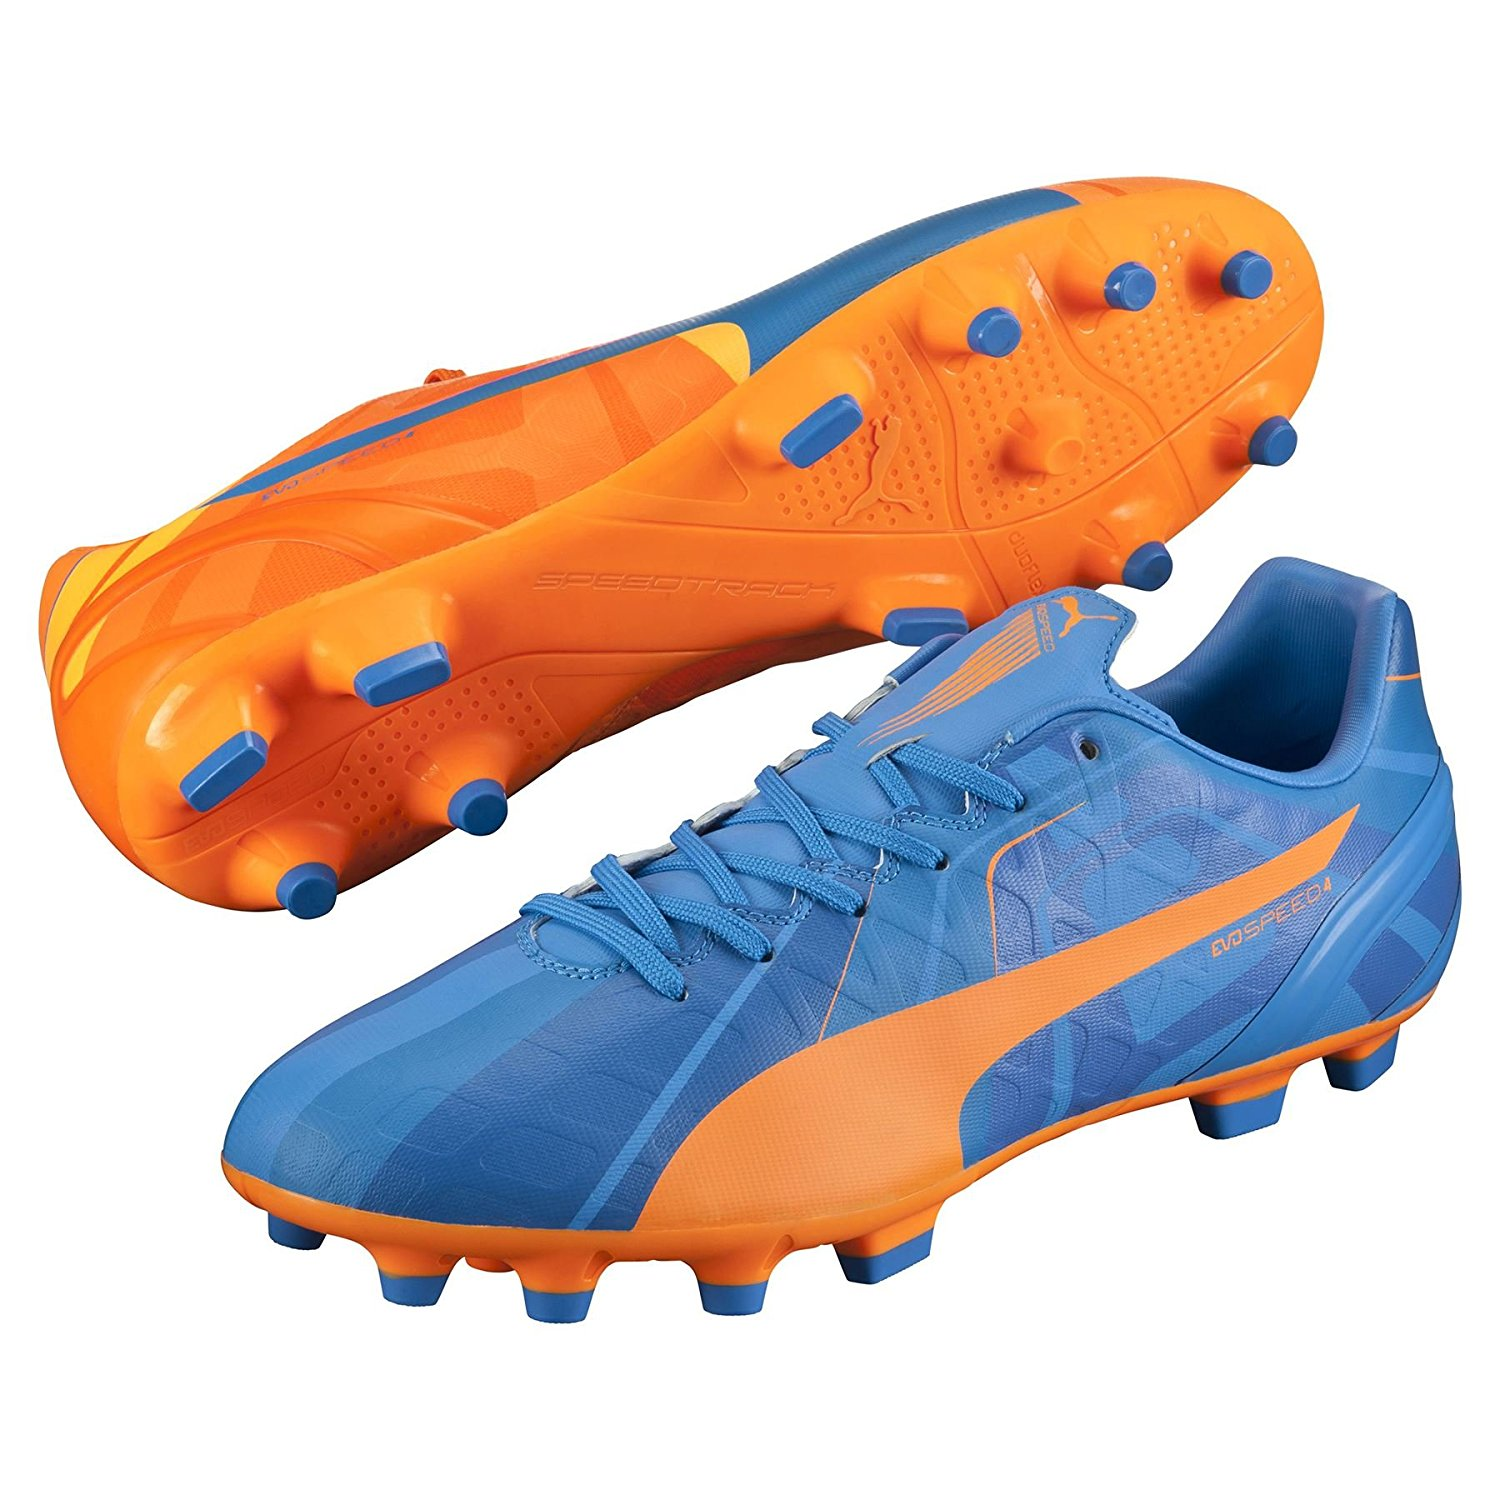 Cheap Puma On Find Deals At Soccer Line Soccer Shoes 66zqdHxwr